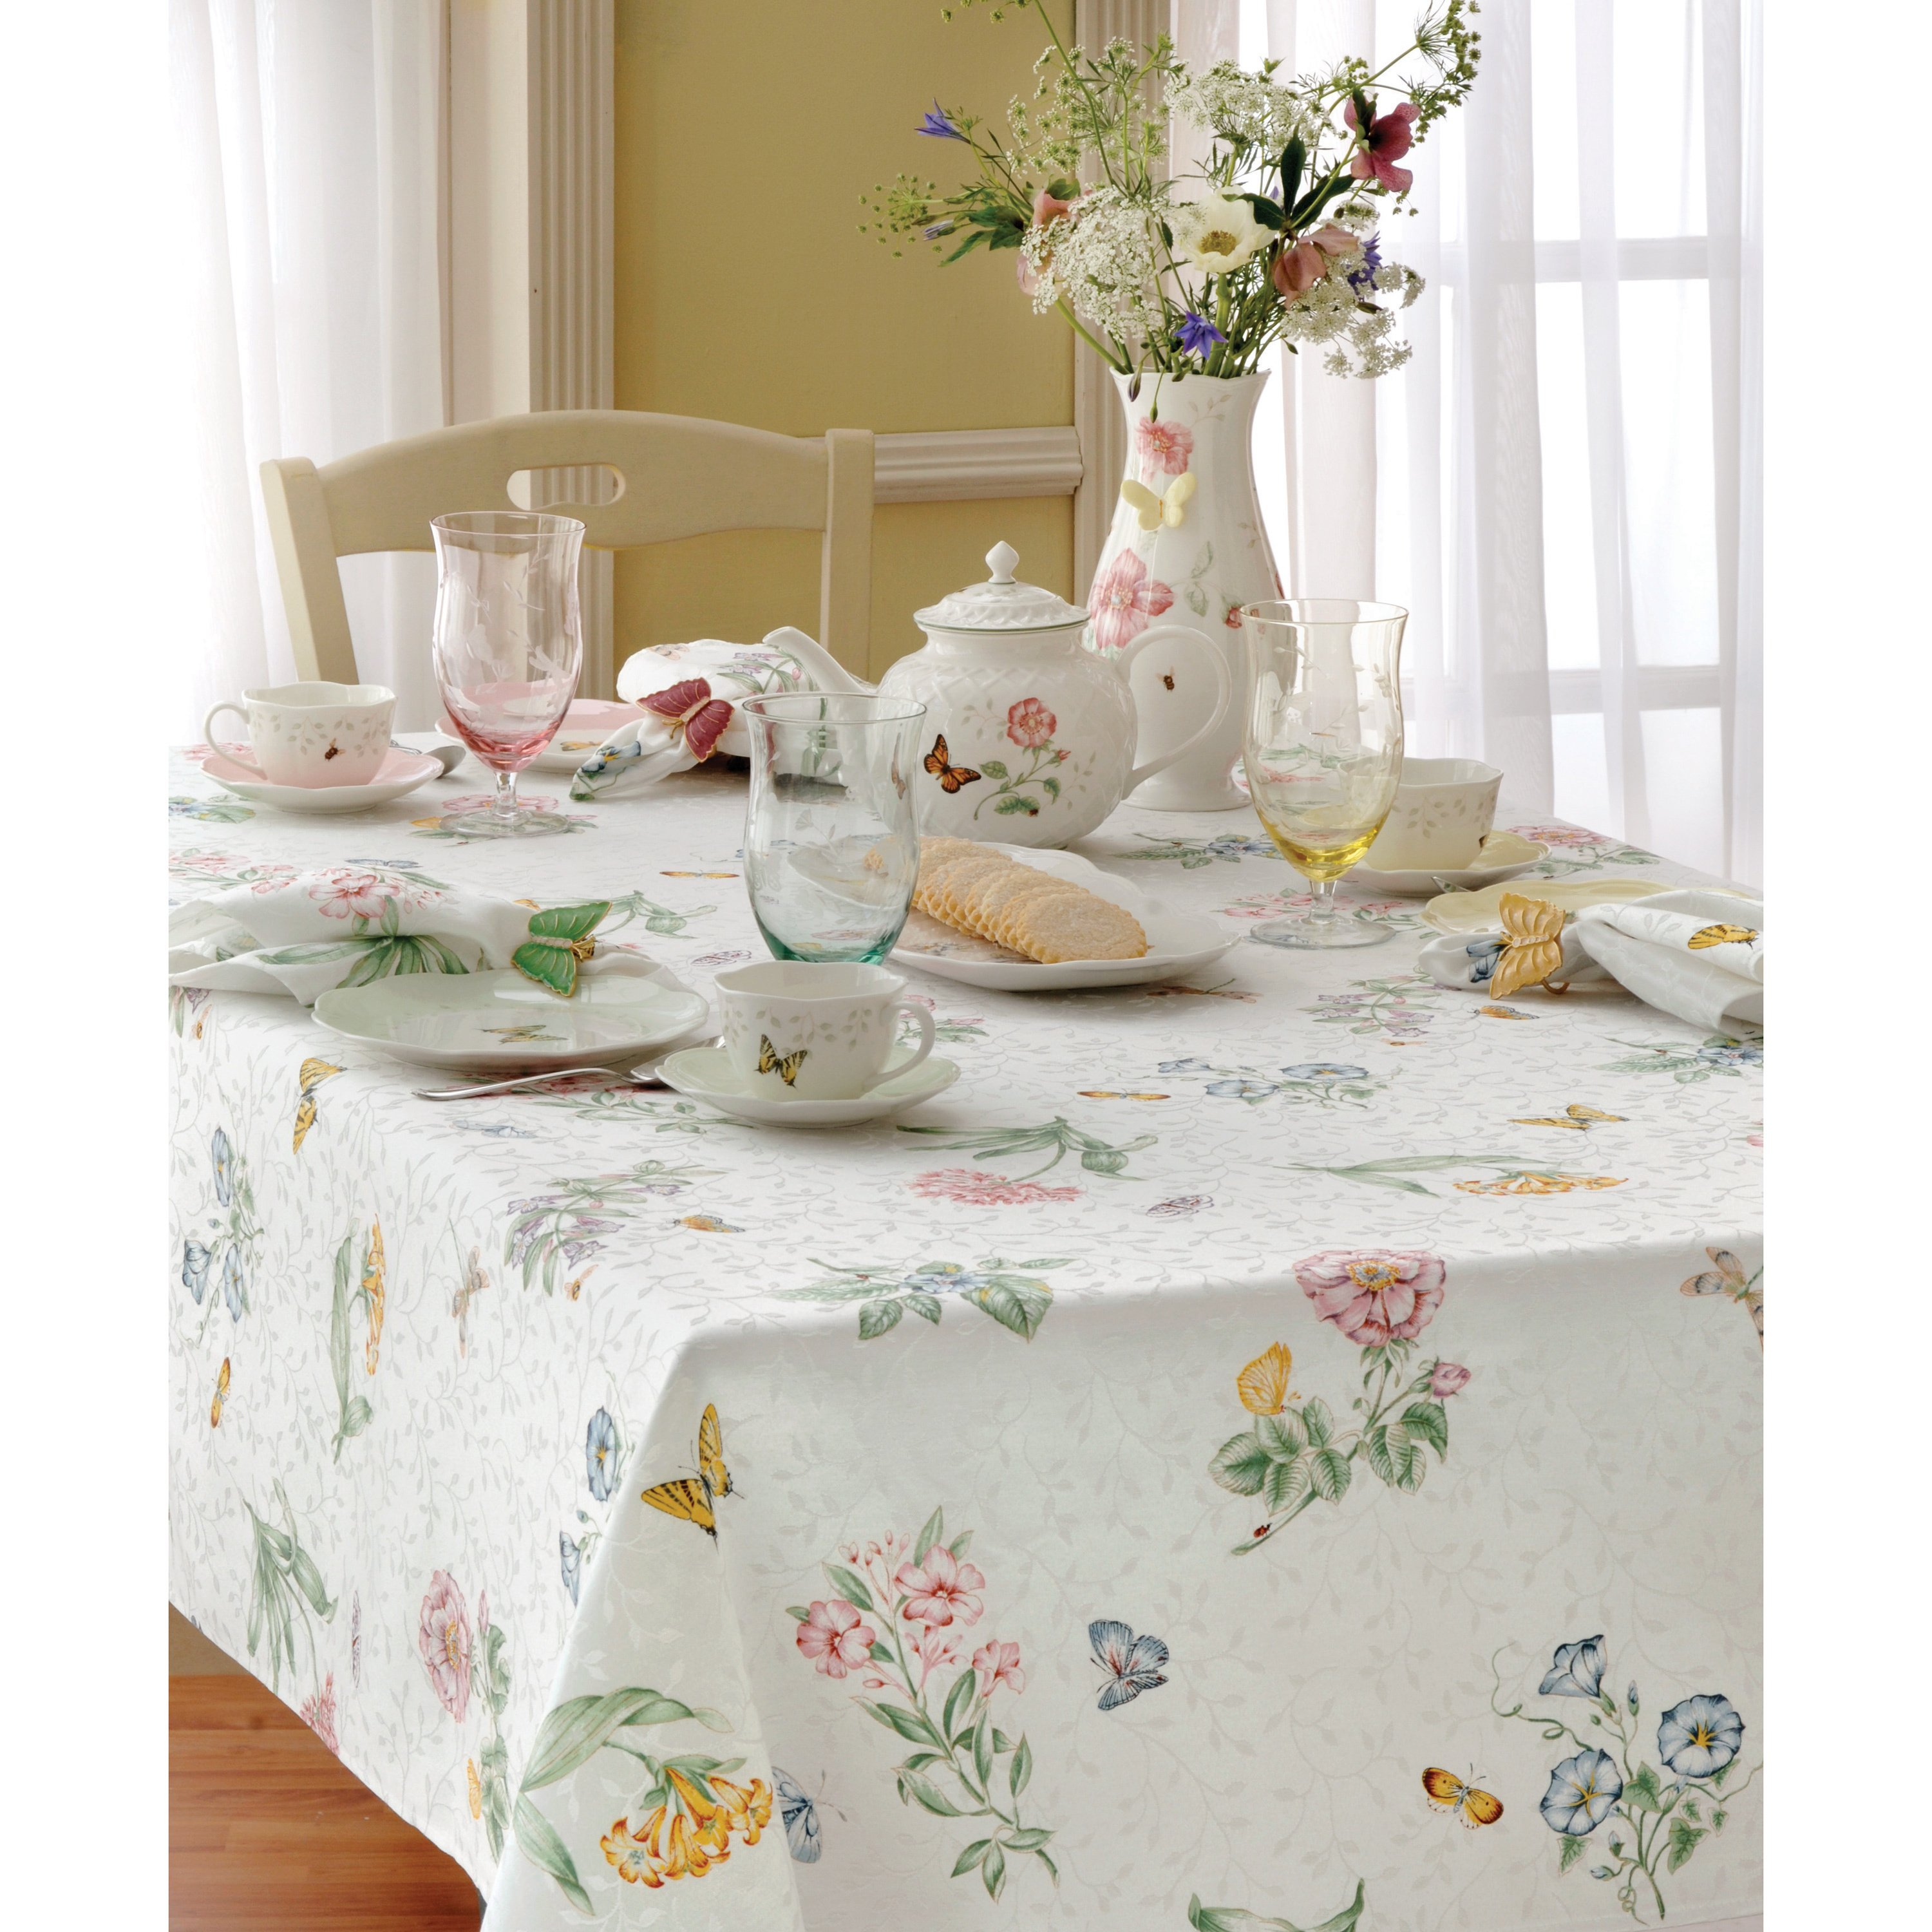 lenox butterfly meadow table cloth free shipping accent orders over end tables and lamps grey tufted chair small one drawer teak root coffee clear bedside patio seating antique